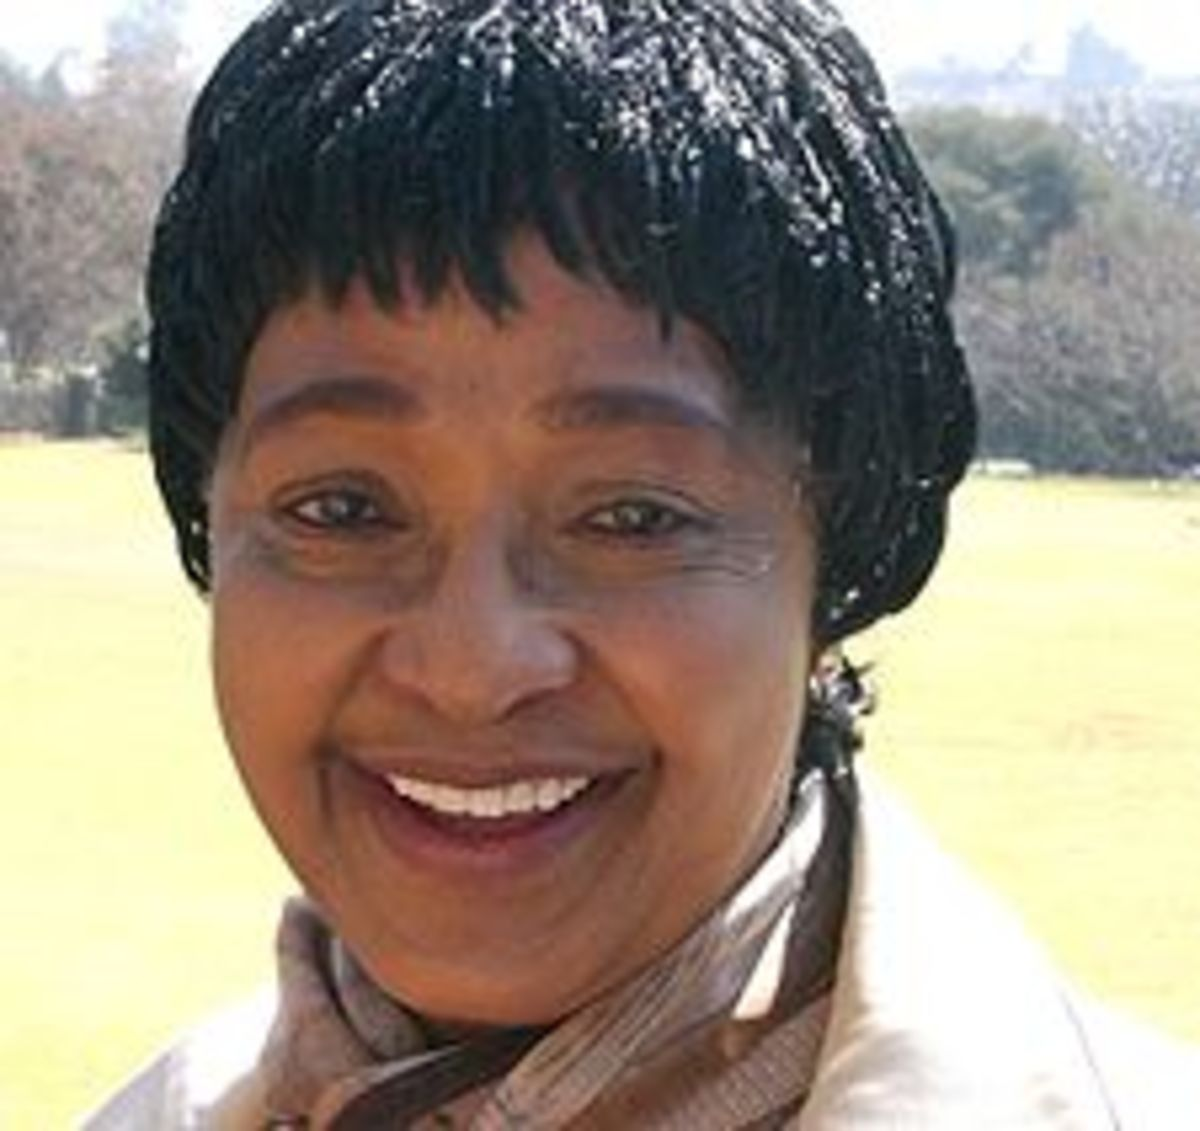 Winnie Nomzamo Madikezela-Mandela(born in 1936) was the daughter of Columbus and Gertrude Madikezela who were the extended members of the Xhosa speaking people of the Pondo nation situated in the Transkei